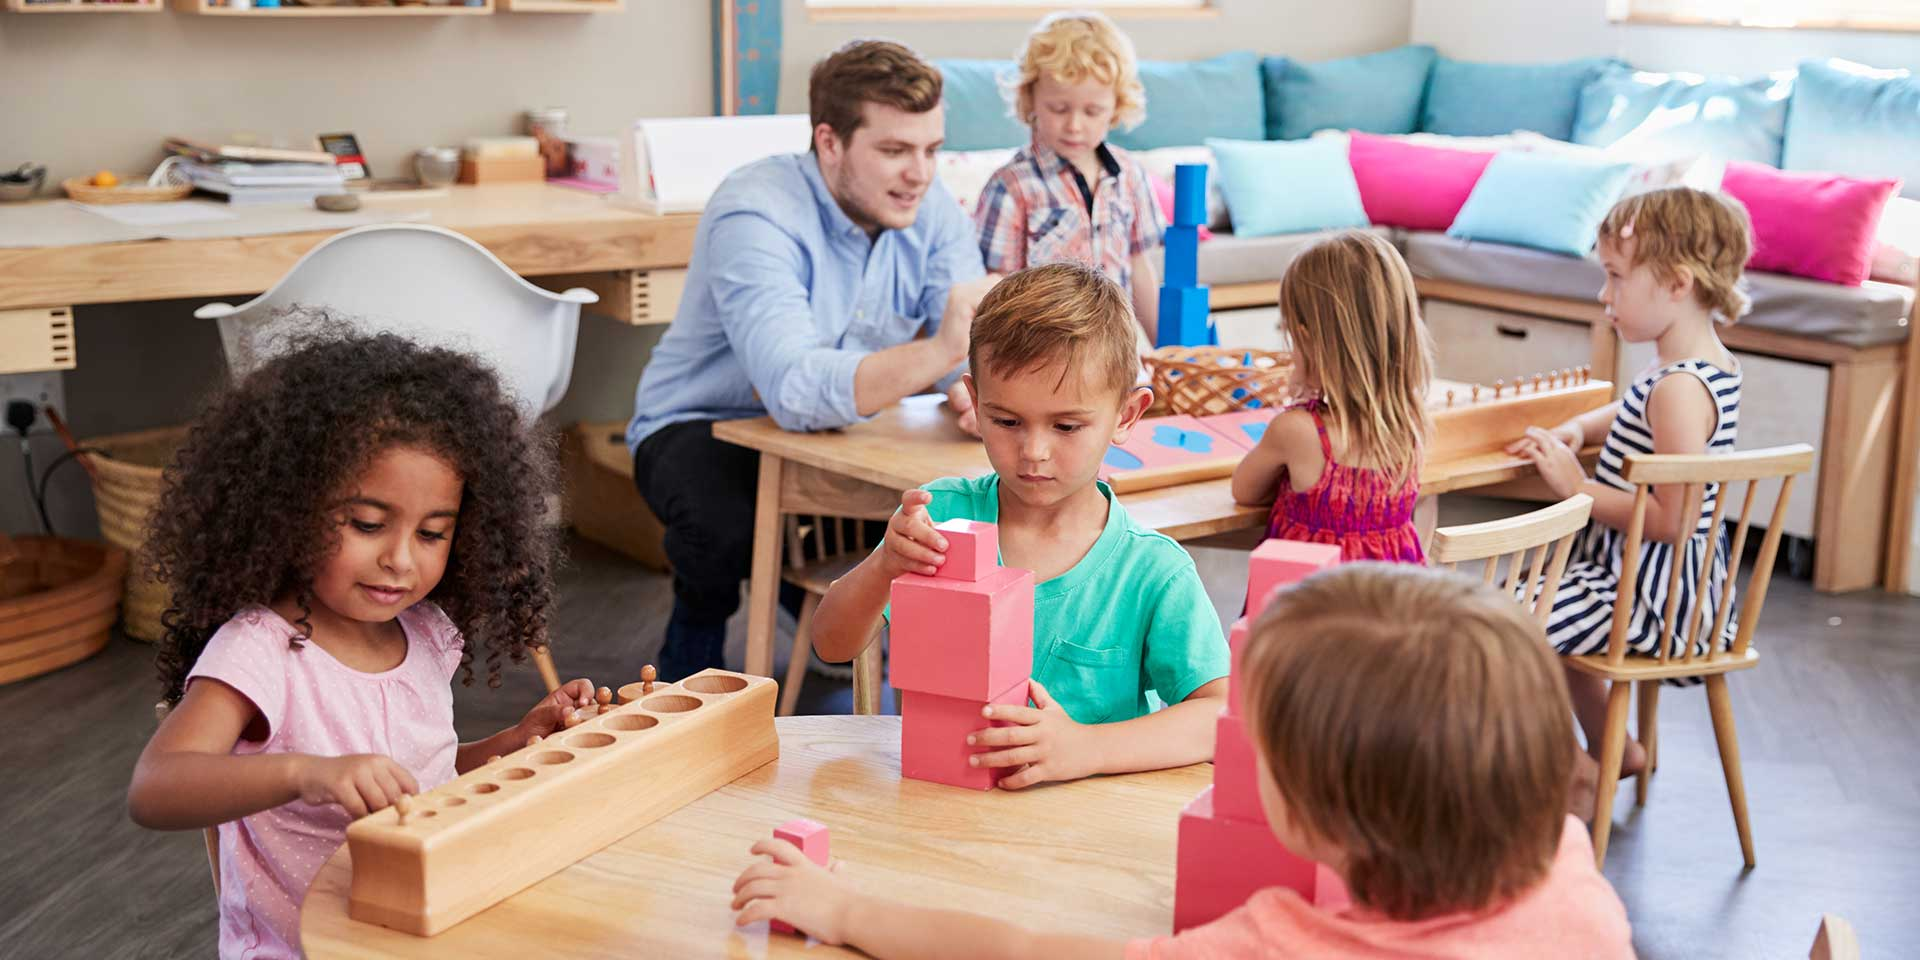 How to Keep Your Daycare Organized: 5 Tips